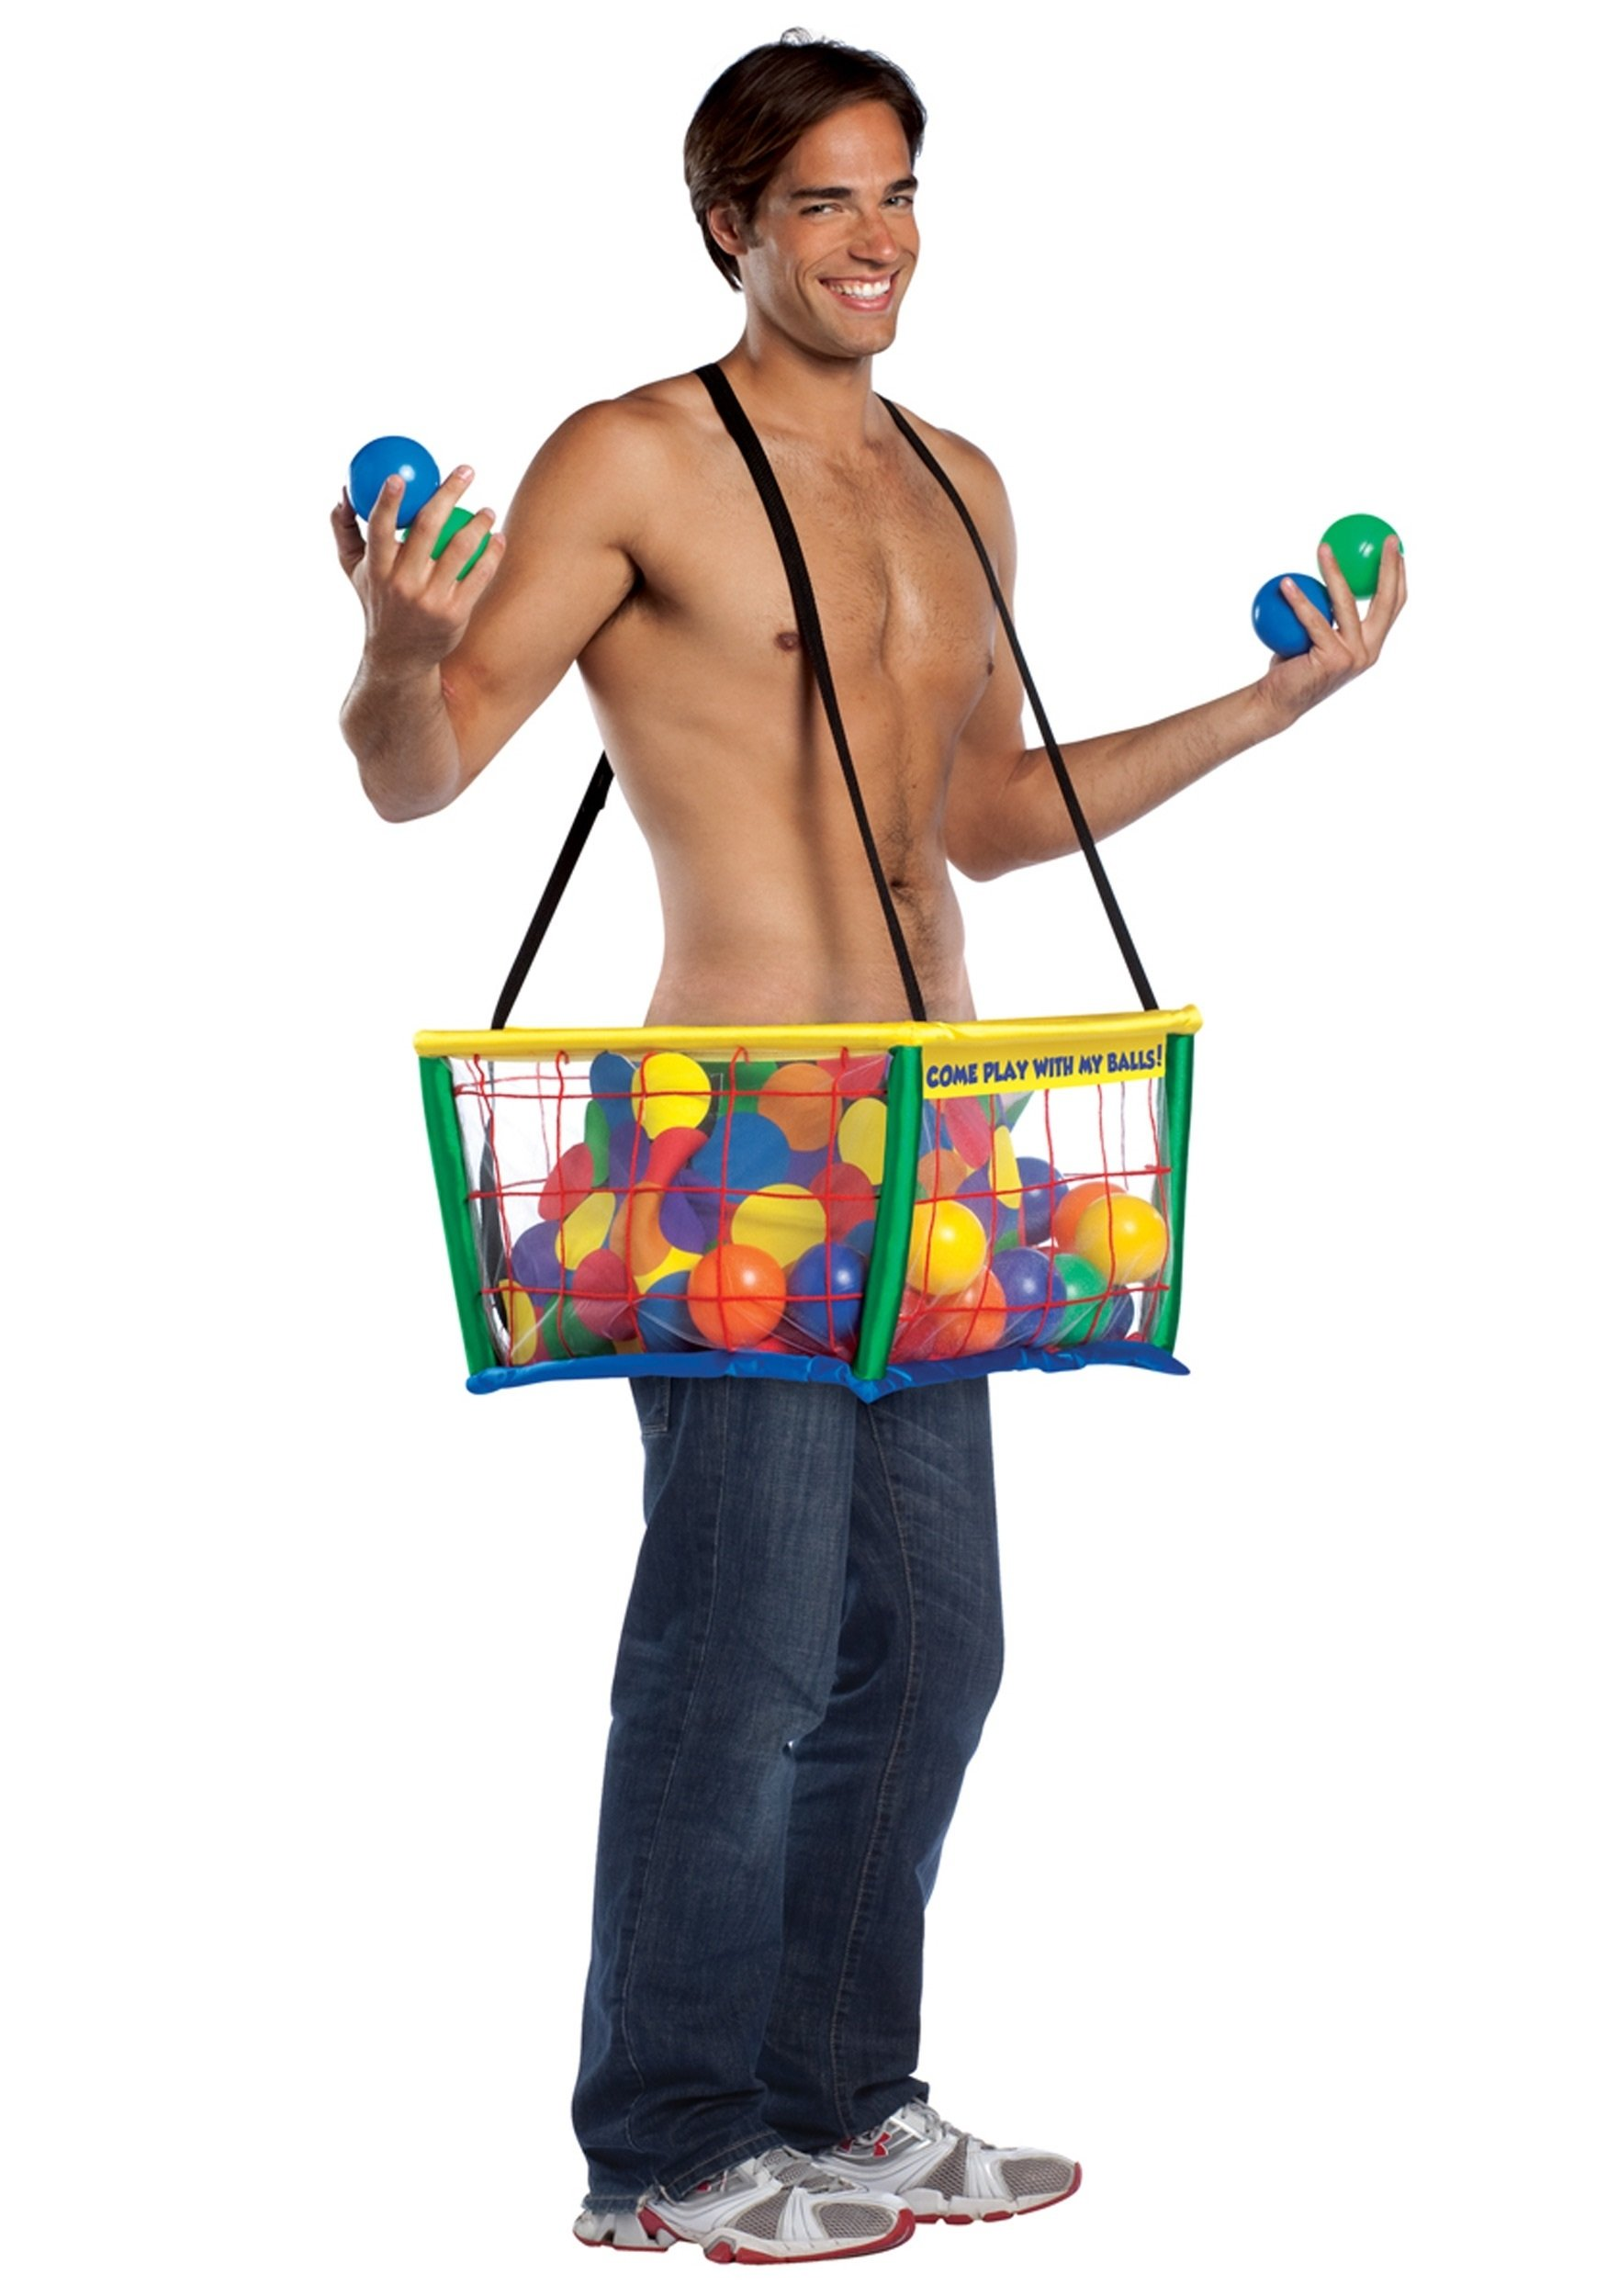 10 Best Funny Halloween Costume Ideas Men ball pit costume 1 2021